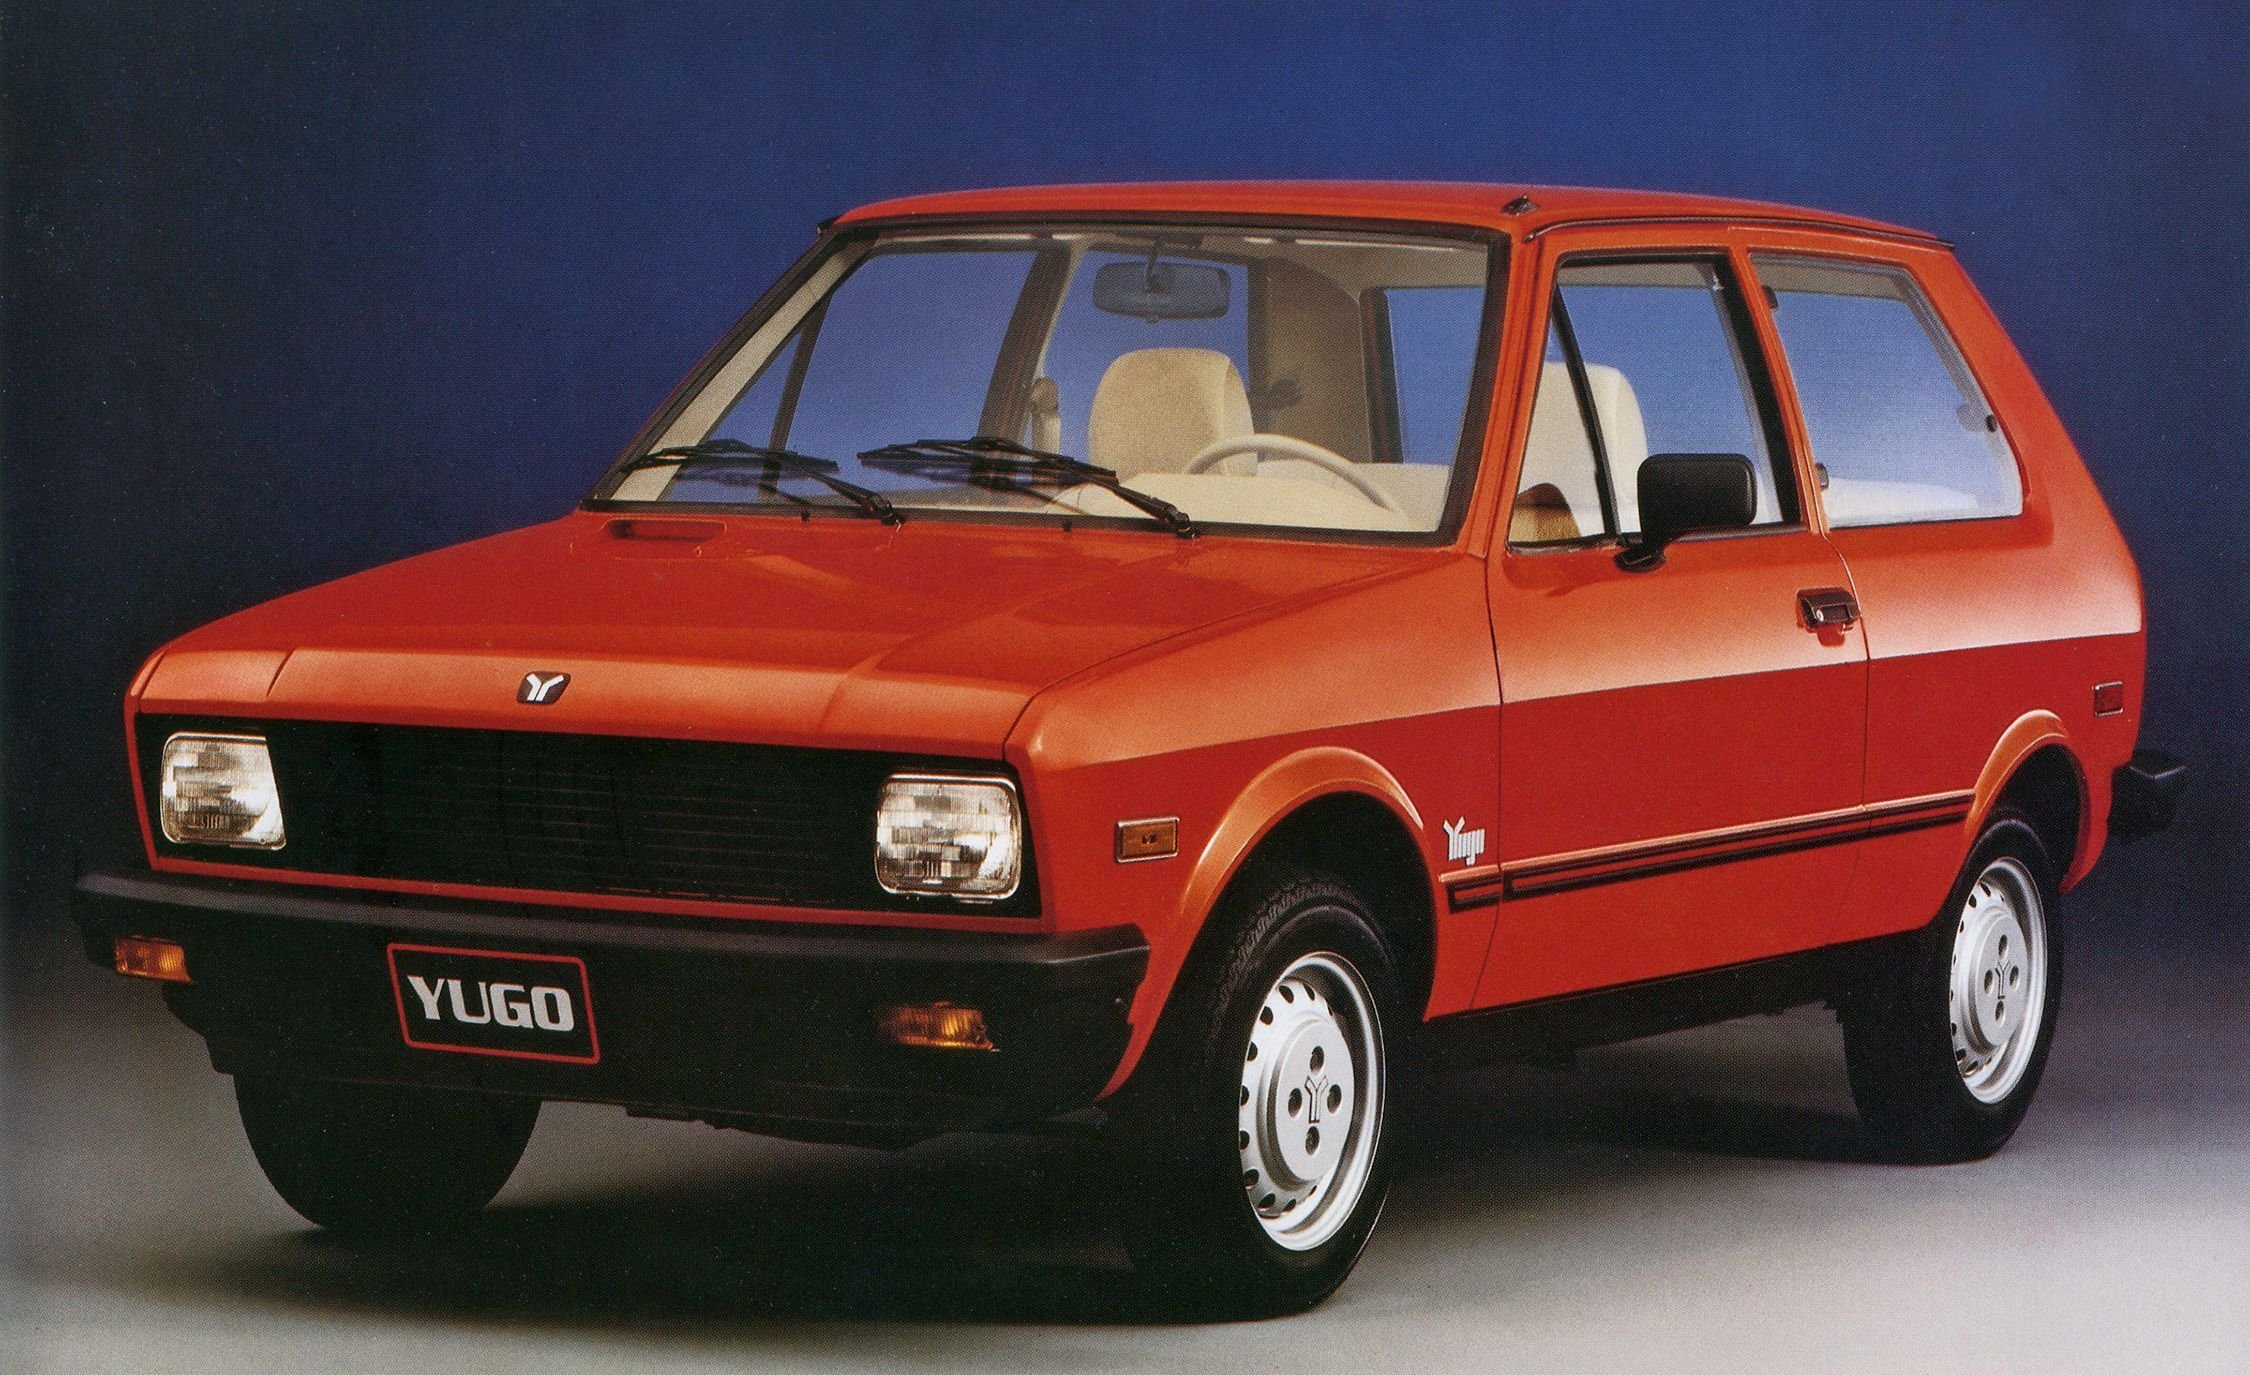 New A Quick History Of The Yugo The Worst Car In History On This Month